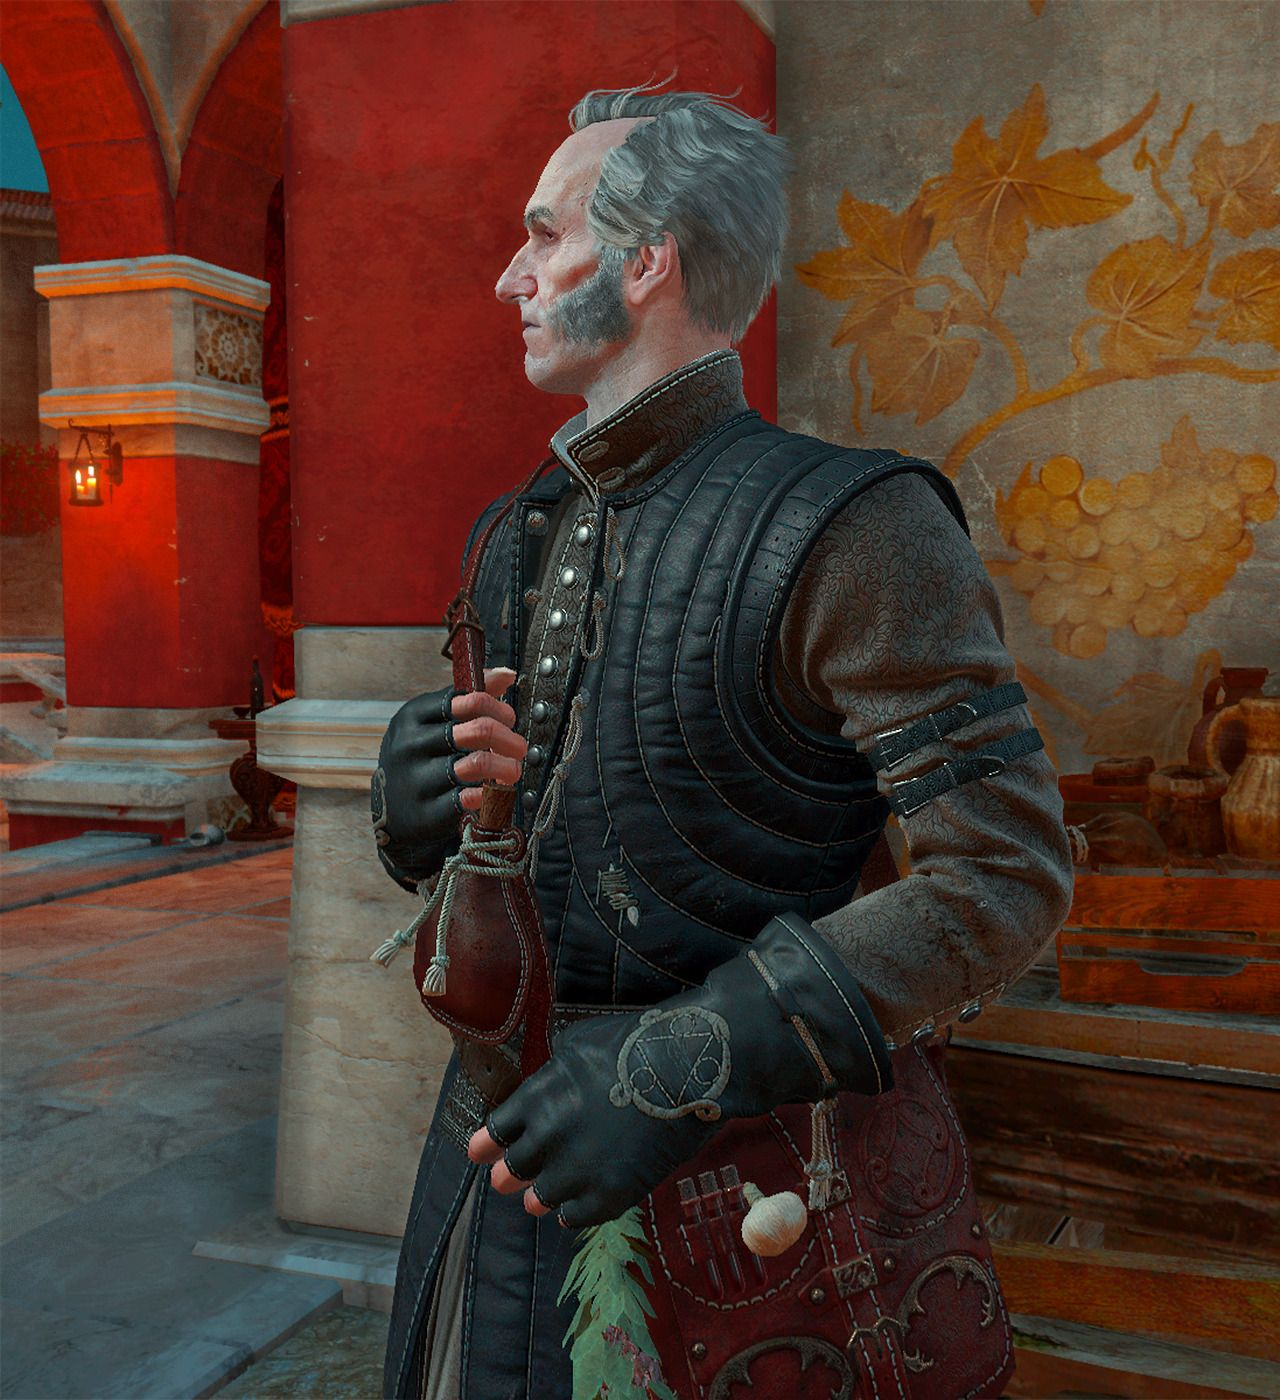 I Intend To Live Happily Ever After The Witcher Books The Witcher The Witcher 3